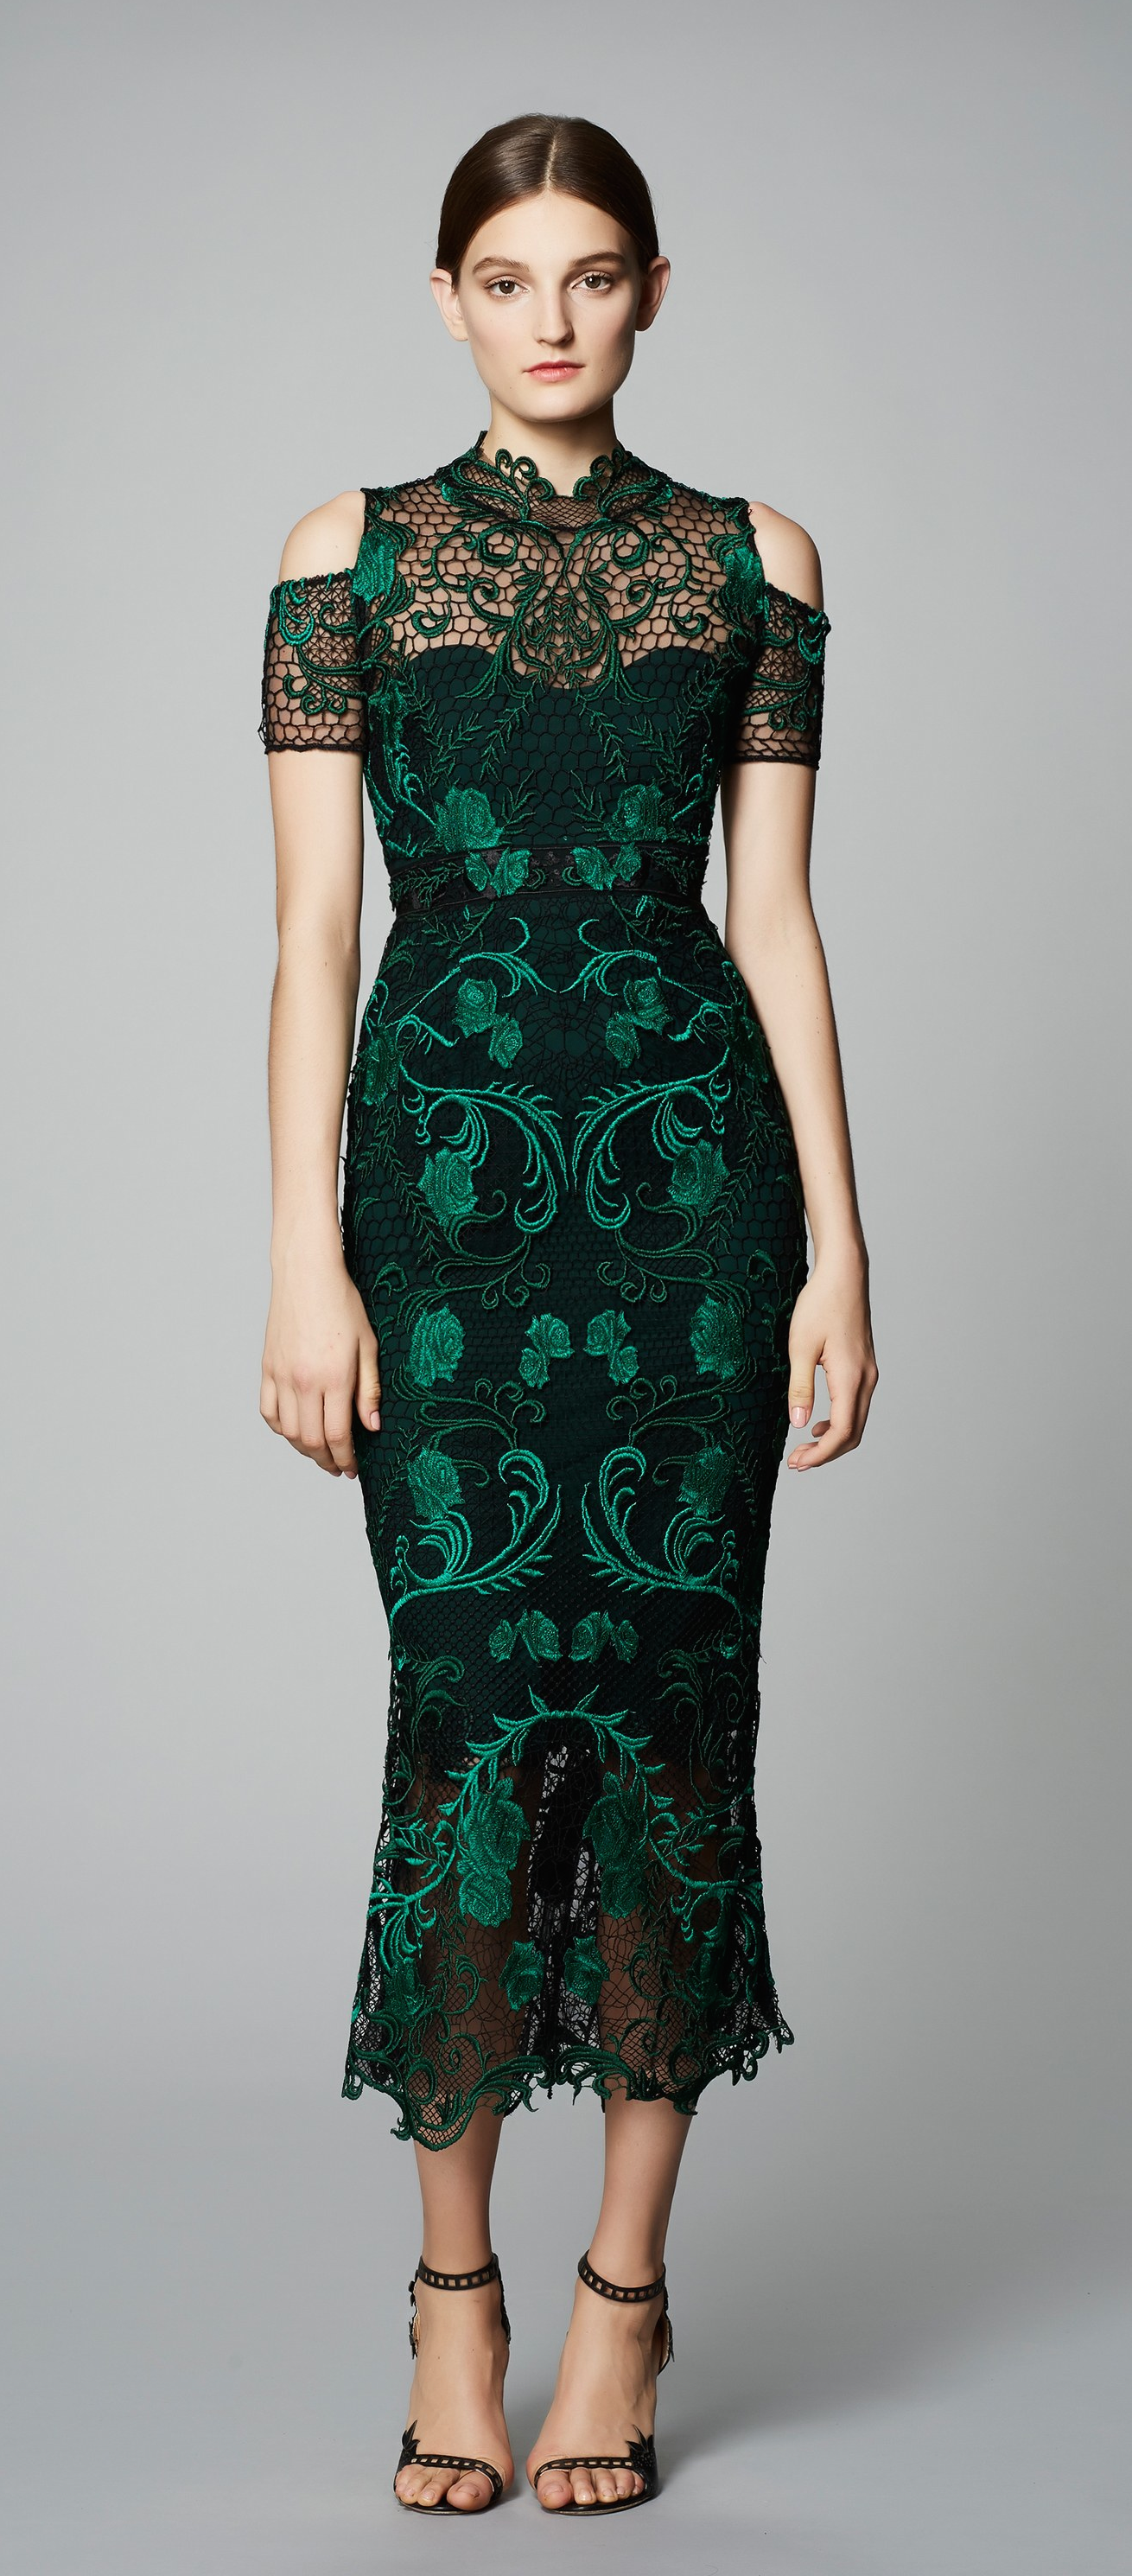 Marchesa notte green lace dress  Marchesa Notte PreFall  not my favorite of their designs color